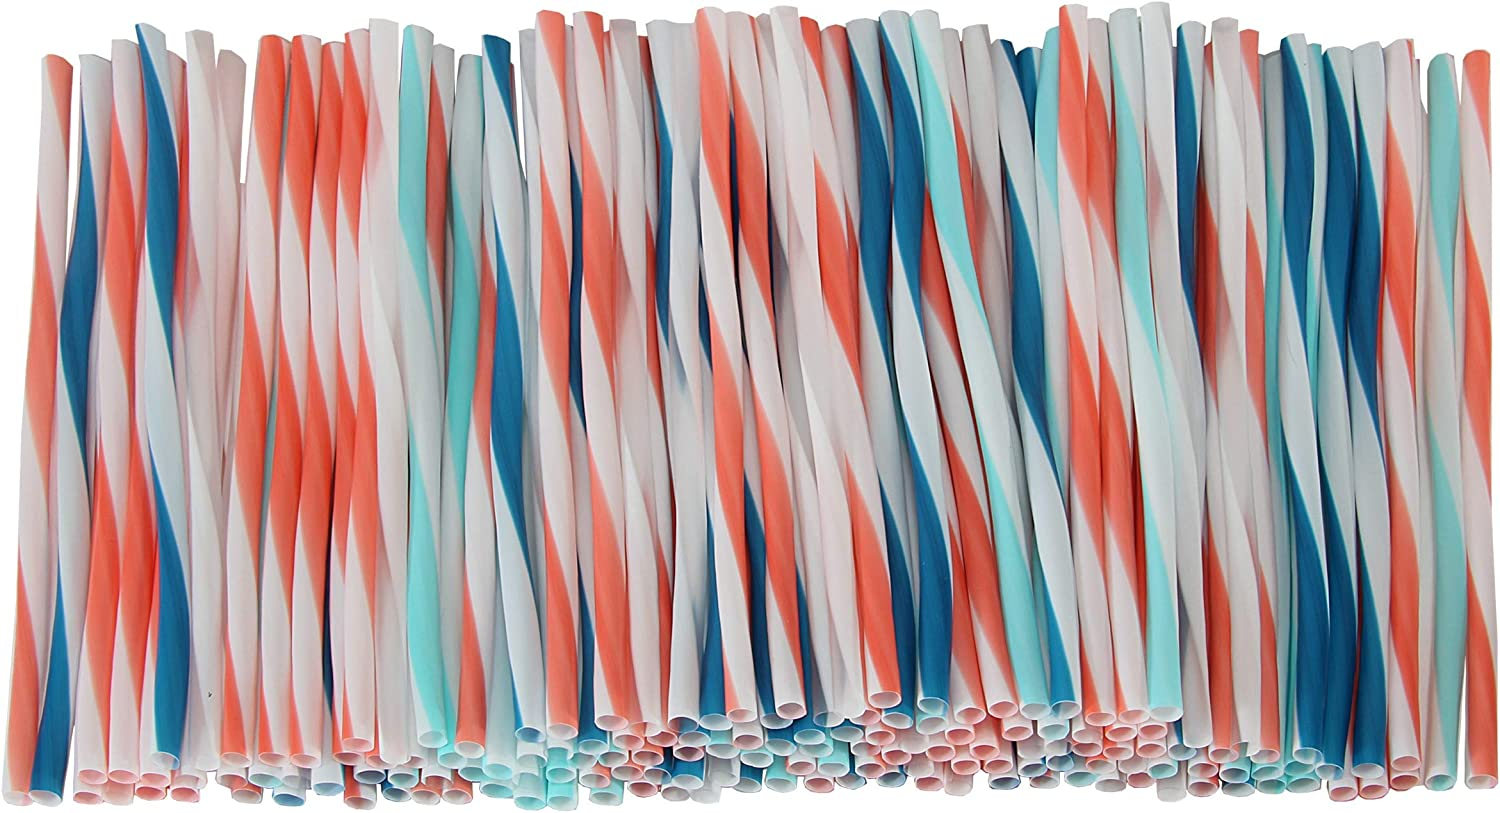 Chef Select Drinking Straws, 150-Count, Decorative Stripe Design with Coral, Blue, Teal Colors